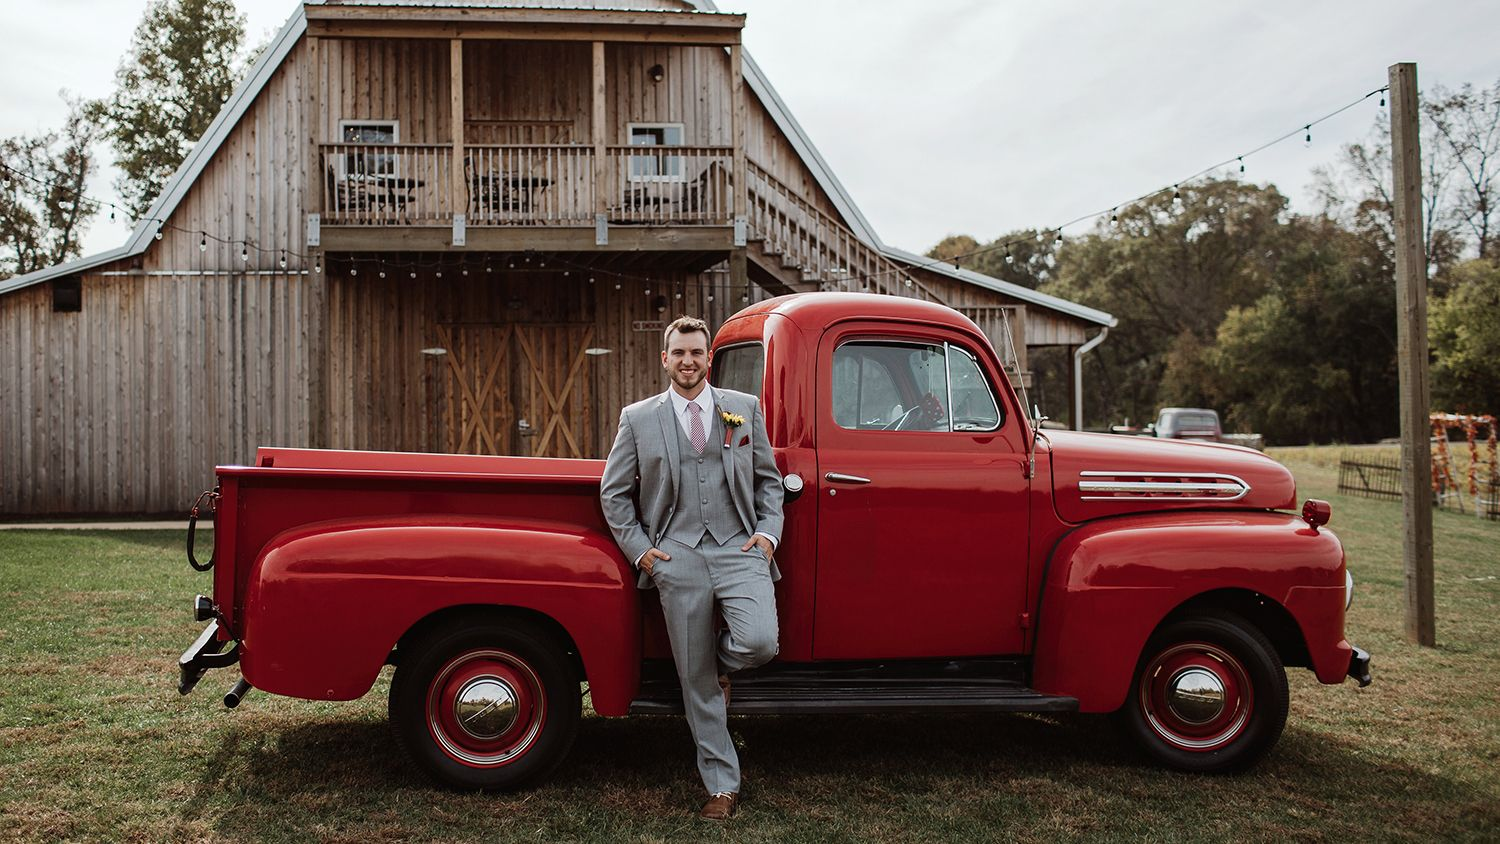 Groom Red Pickup Truck in Front of Reception Barn